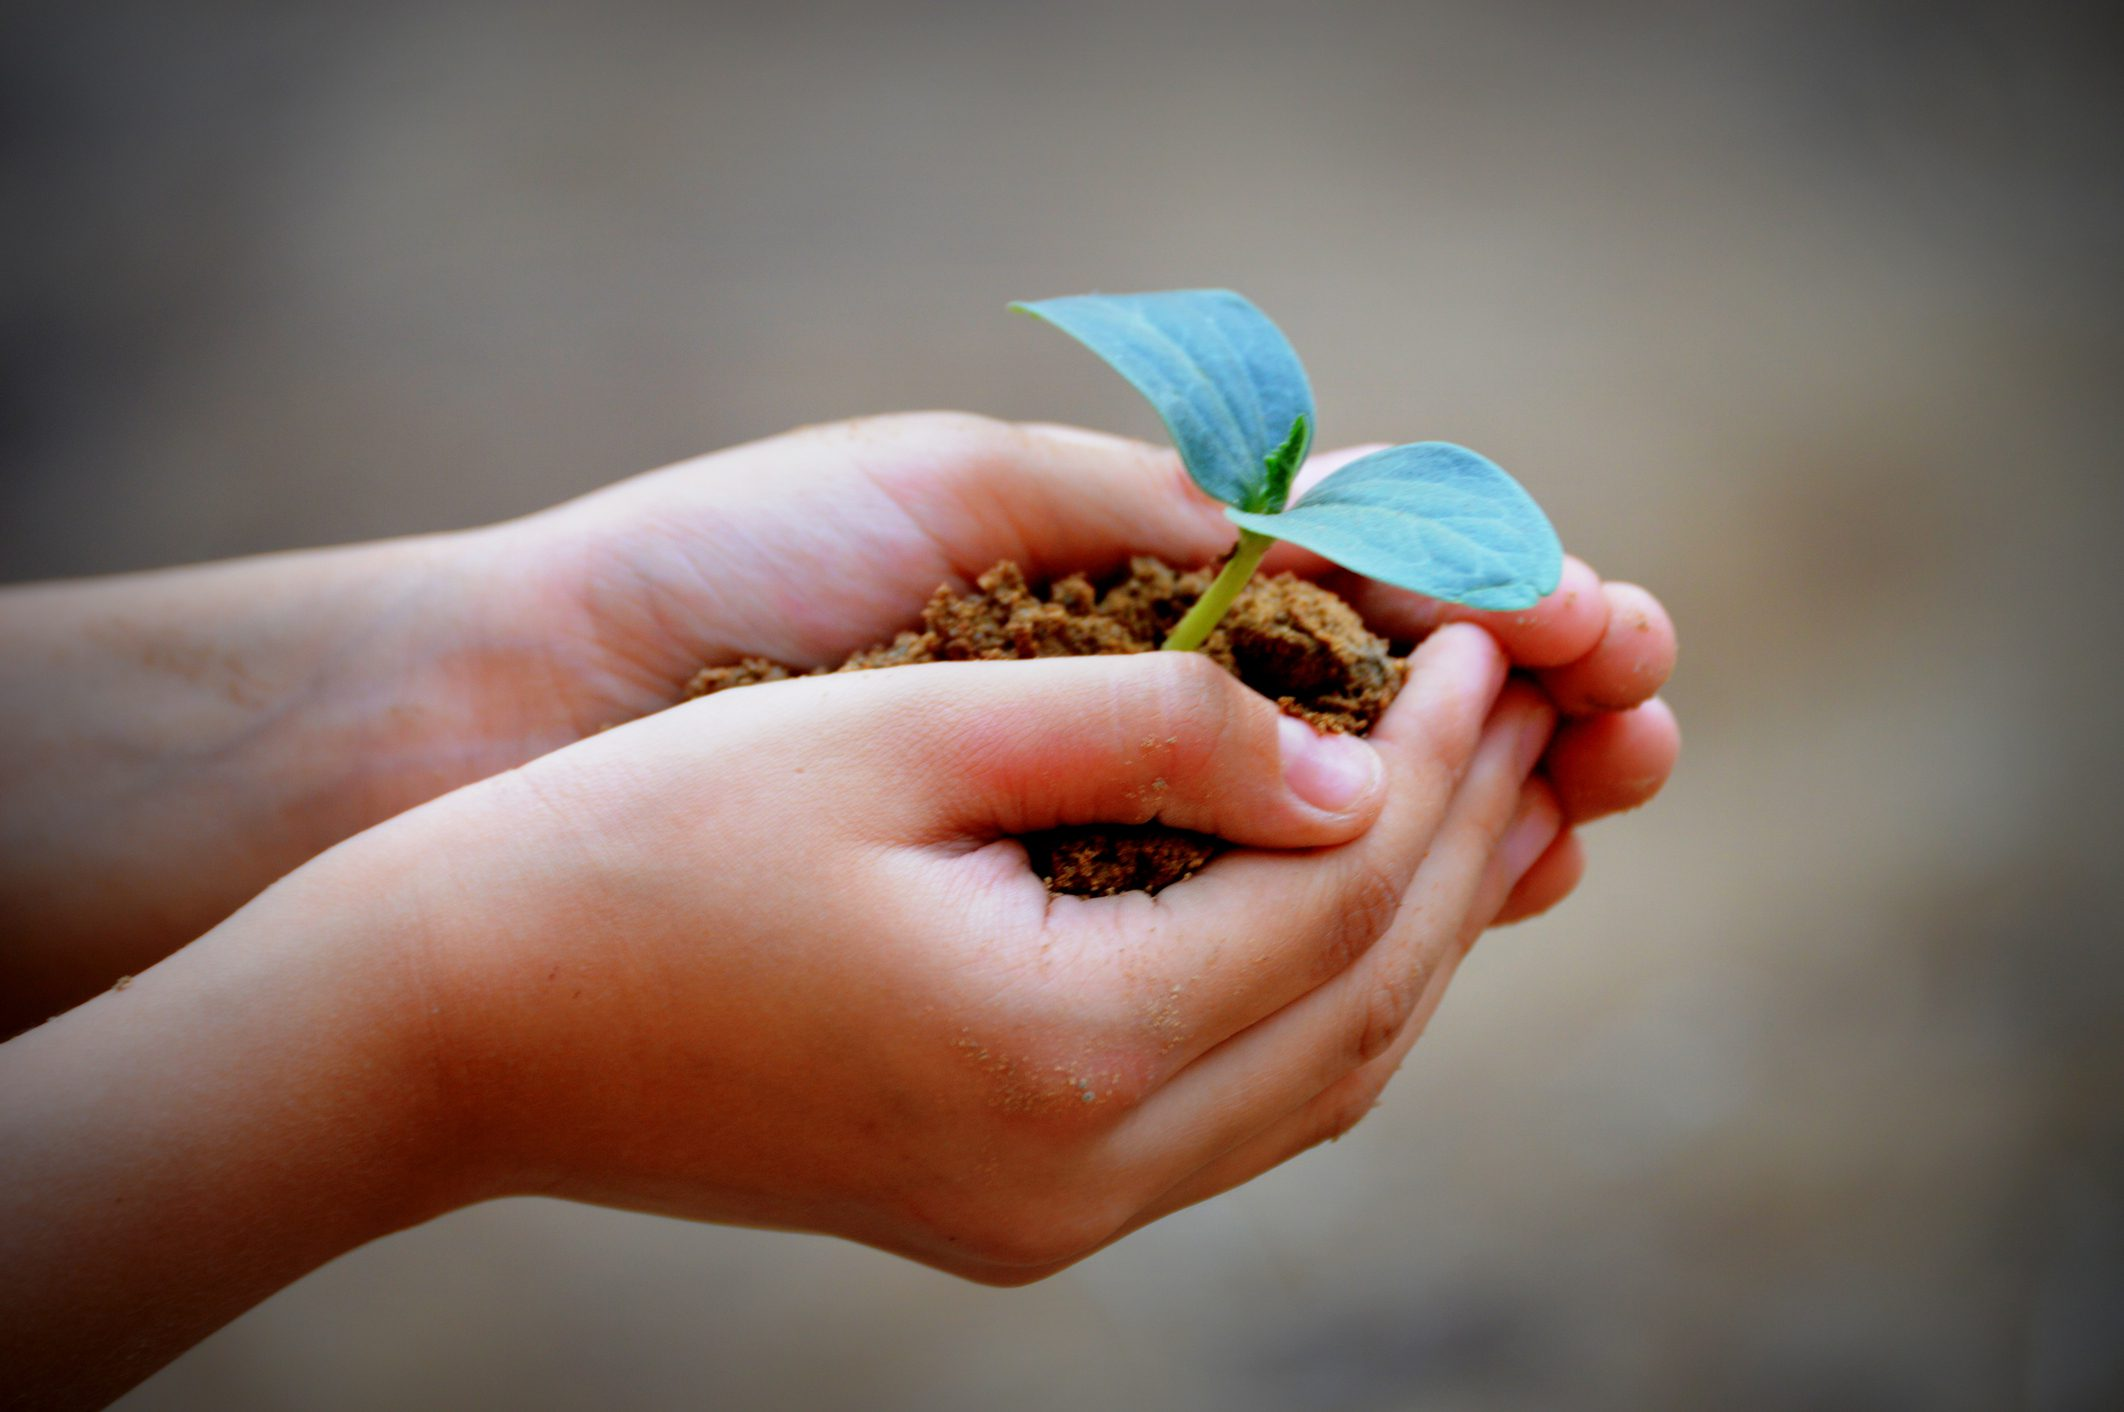 hands holding soil and small plant